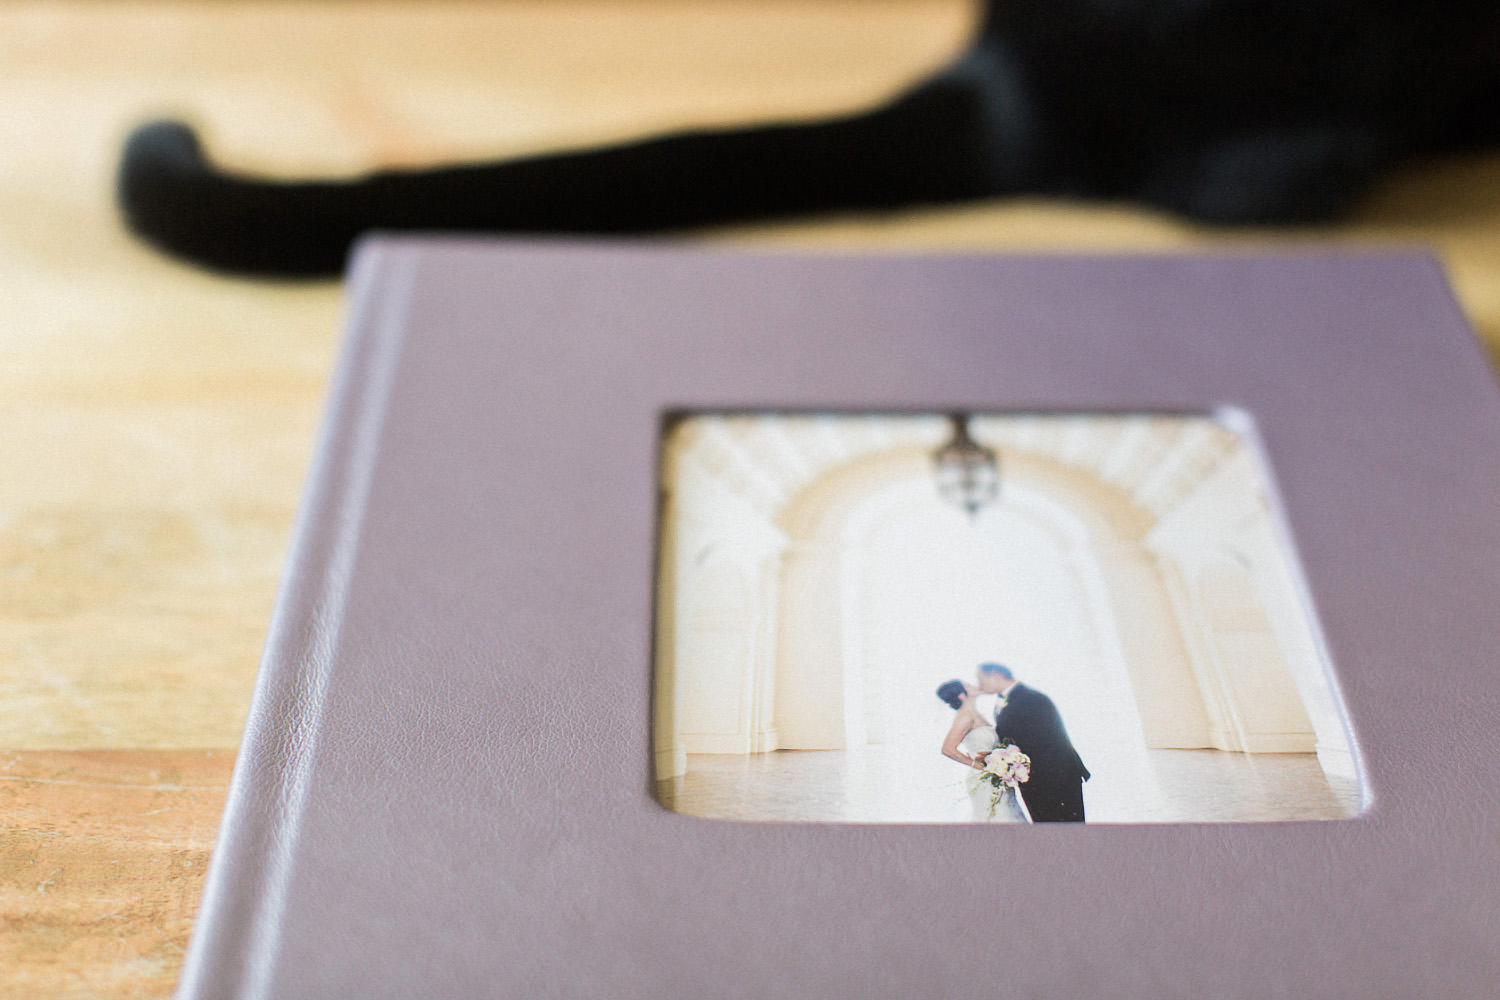 wedding-photography-albums-lay-flat-flush-mount-leather-hi-res-001_5.jpg